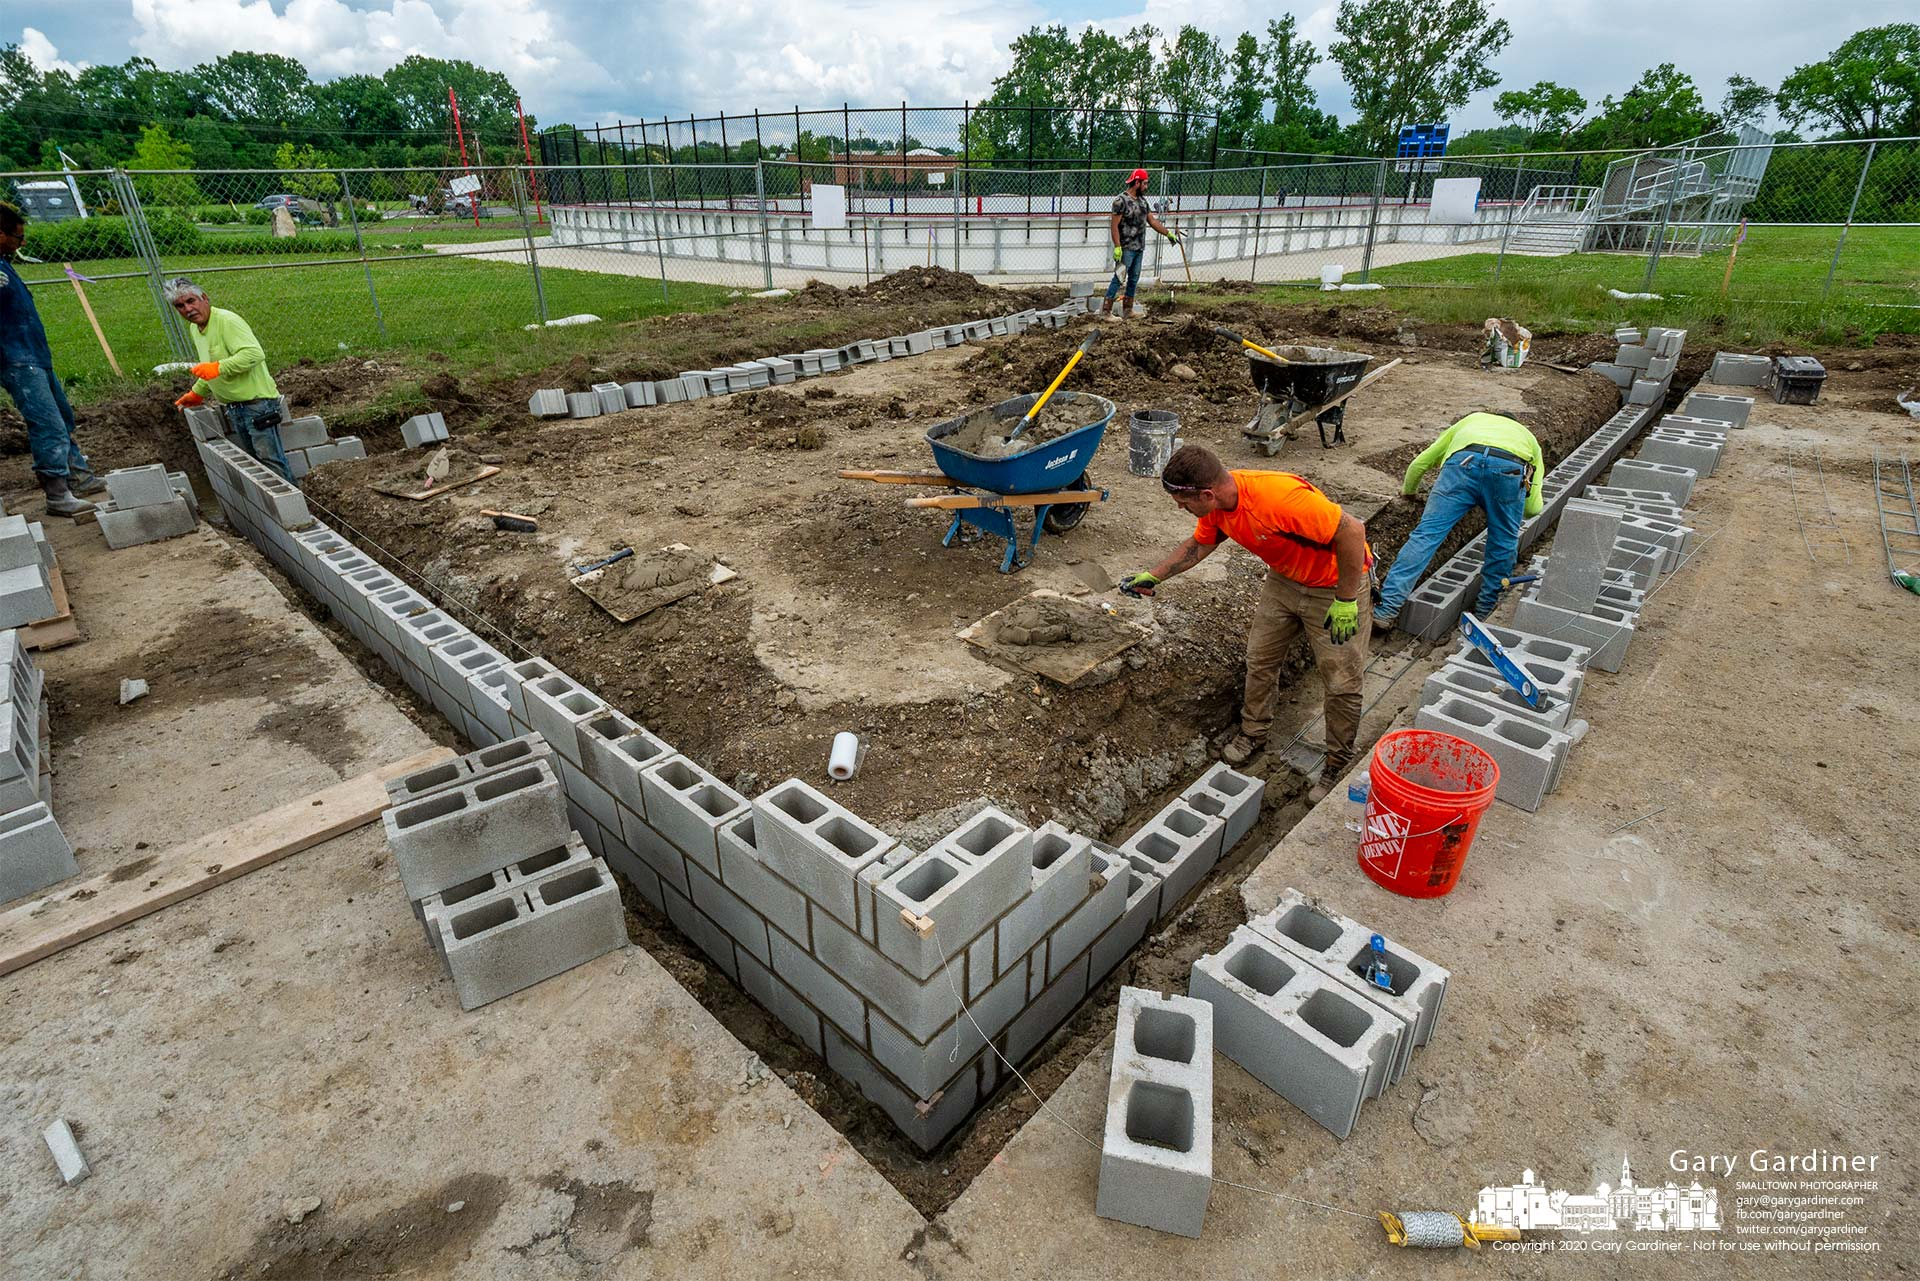 Masons build concrete block walls for a storage and work shed at Alum Creek Park South where the BMX bike path is being upgraded. My Final Photo for June 10, 2021.